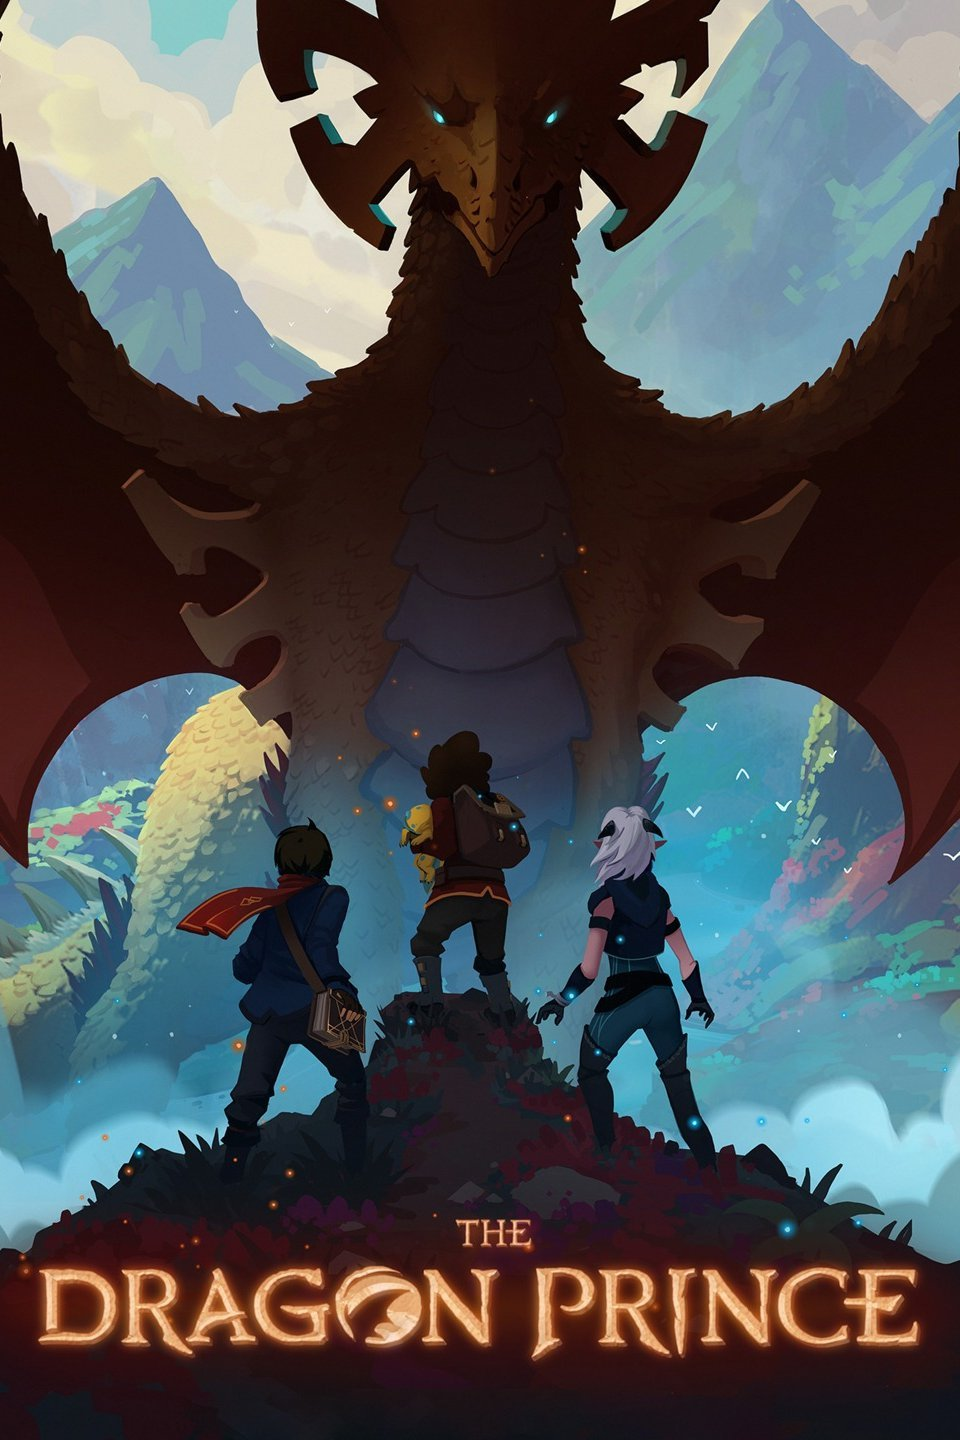 The Dragon Prince, 2018 - Created by WonderstormAn animated cartoon TV show with toonshaded 3D characters and combination background environments in 3D and 2D. Streaming on Netflix.My role: Senior Development Artist / Lead Surfacing ArtistDevelopment and improvement of surfacing and inter-departmental practices, as well as creation and maintenance of thorough documentation for surfacing procedures, guidelines, and troubleshooting common issues; painting characters, props, environments; training artists; generating collaborative creative solutions in meetings with other department supervisors.In-depth details available in my cover letter on LinkedIn.Programs used: Maya (UVs); Mari (environment painting); Mudbox (character painting); JCube toonshaders (characters); Maneki 3Delight, Vray (rendering);